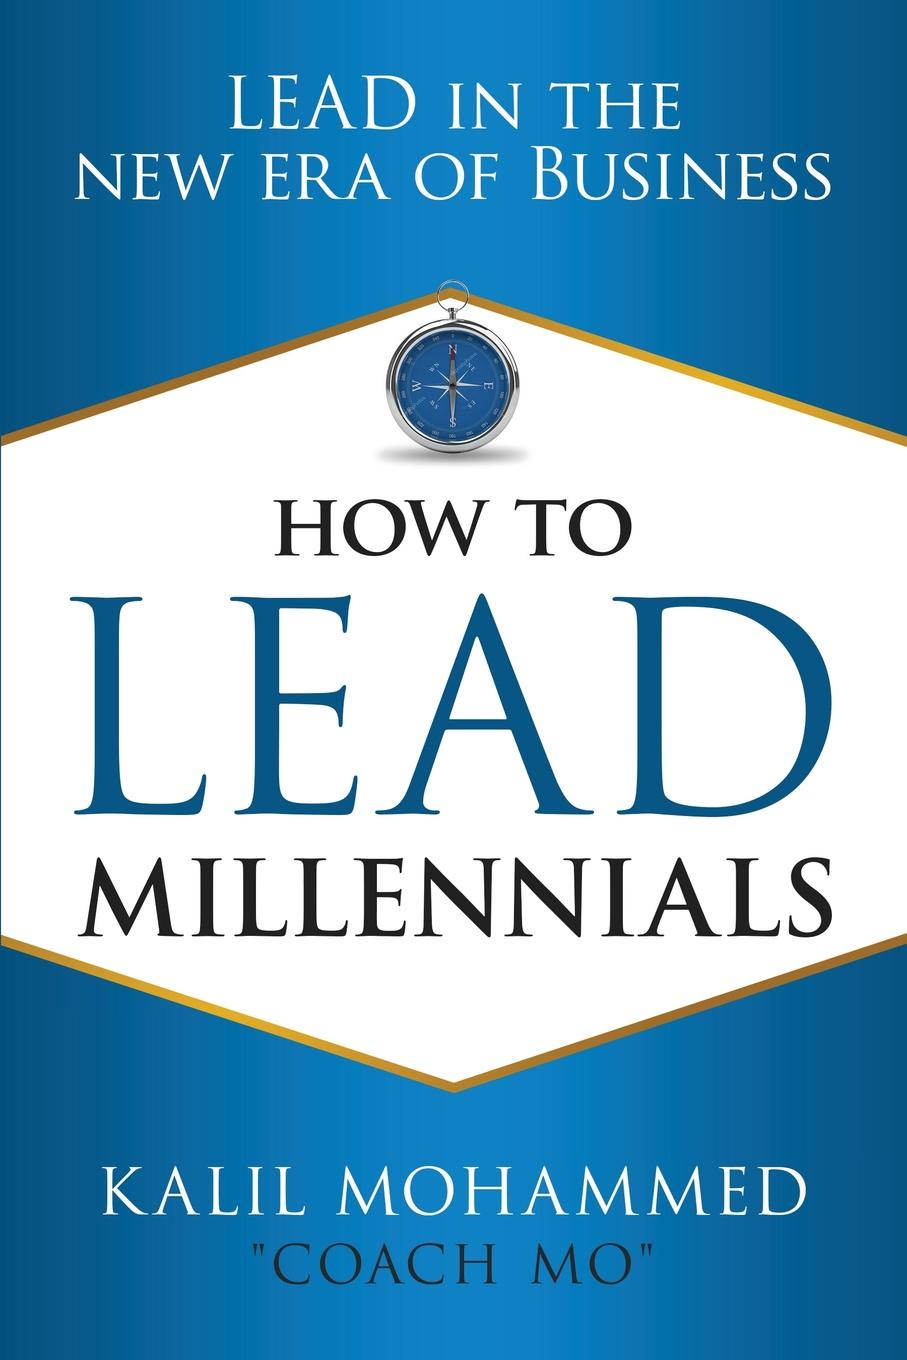 Kalil J Mohammed How to Lead Millennials. Lead in the New Era of Business lisa mcleod earle leading with noble purpose how to create a tribe of true believers